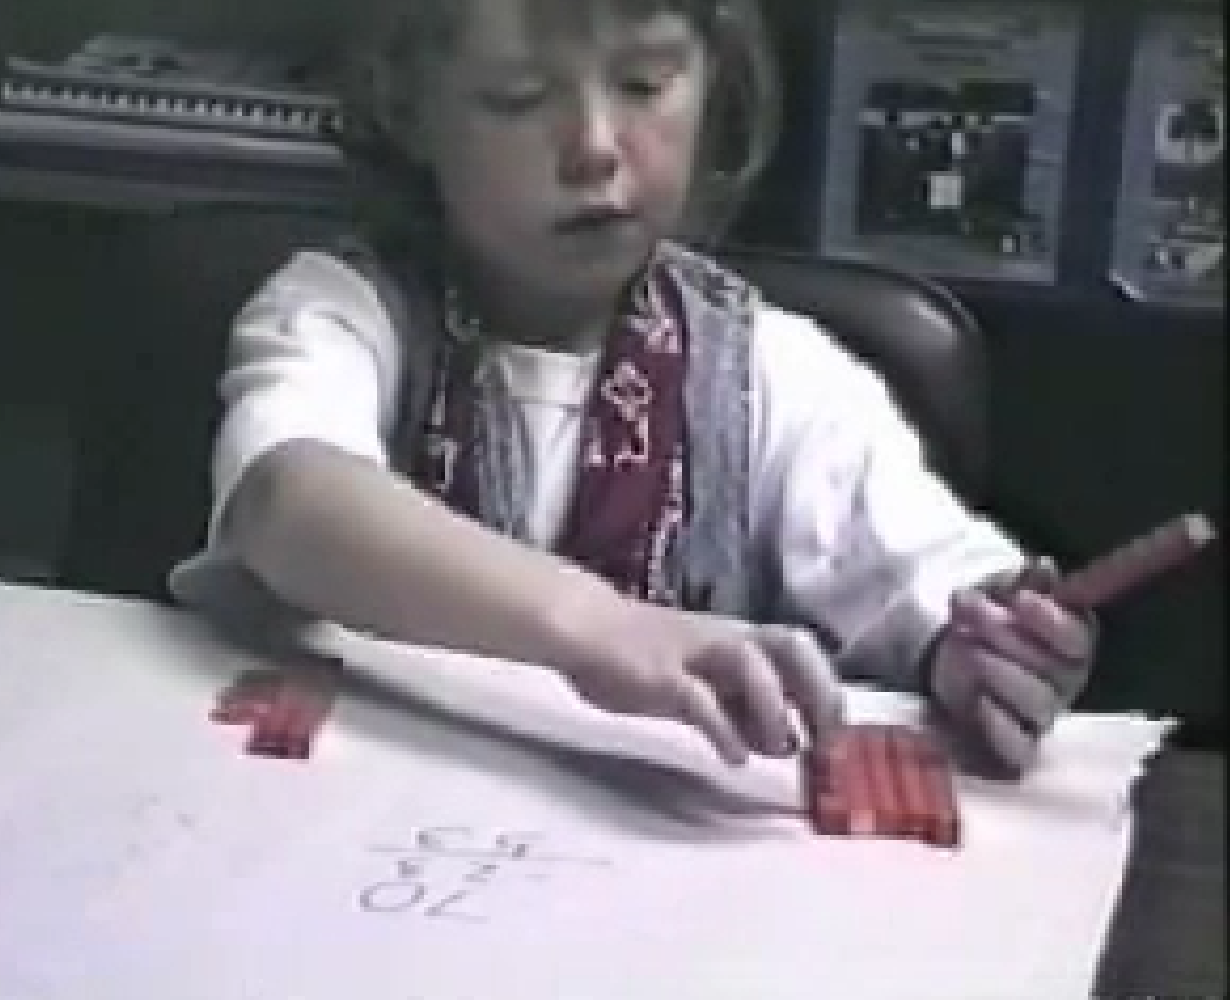 Figure 2. Gretchen using the base ten blocks.